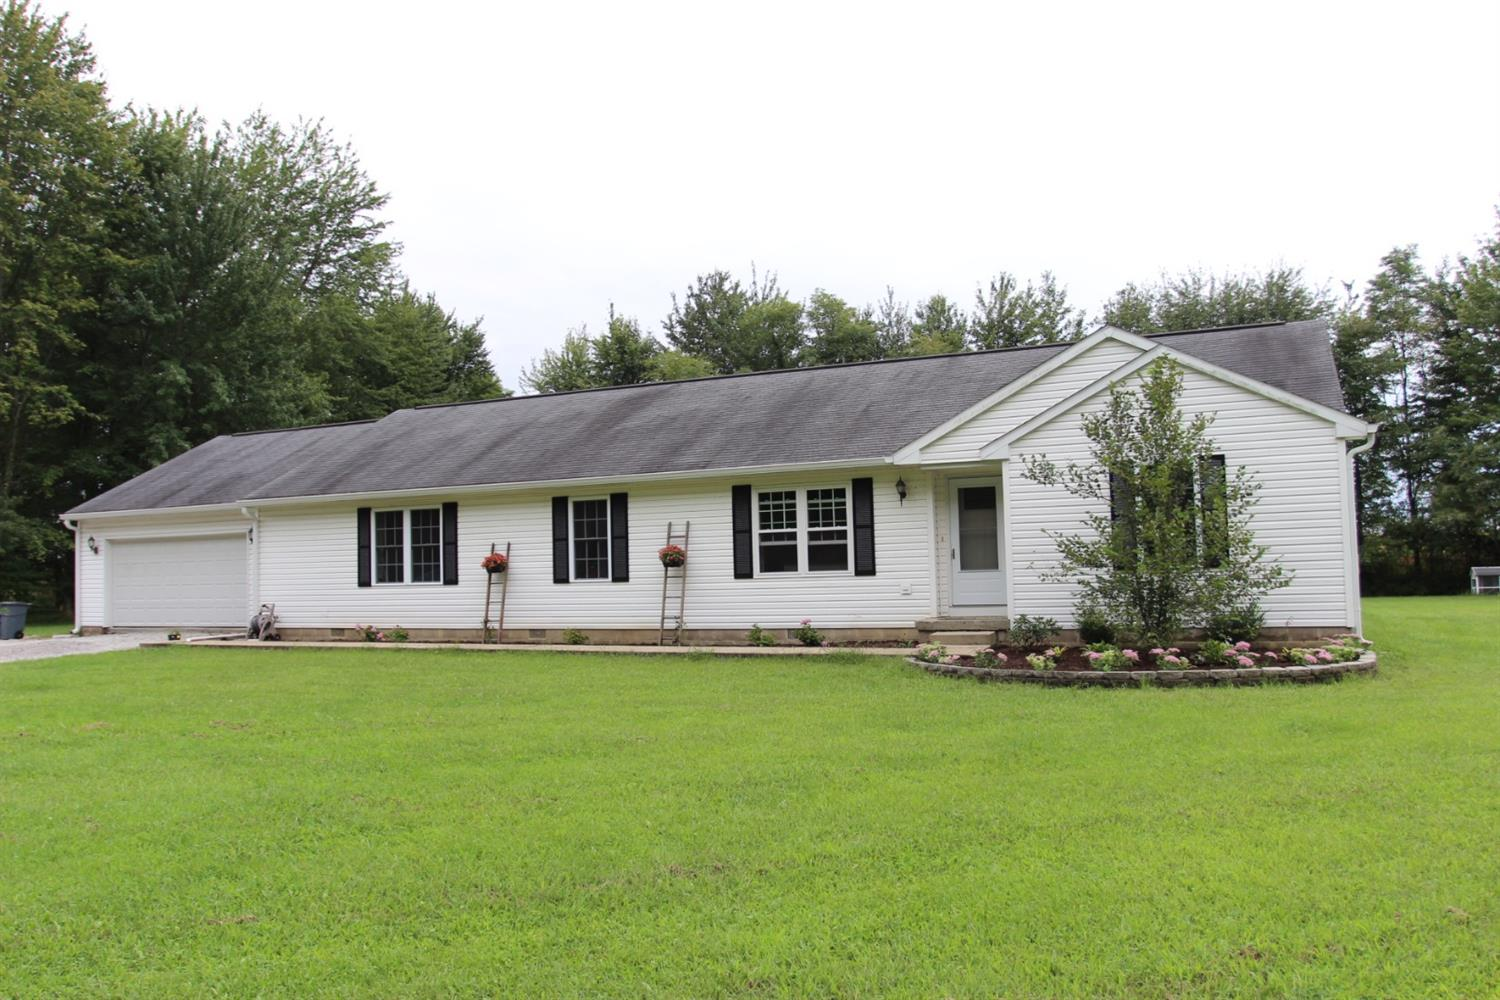 6443 Long Glady Rd Wayne Twp. (Clermont Co.), OH